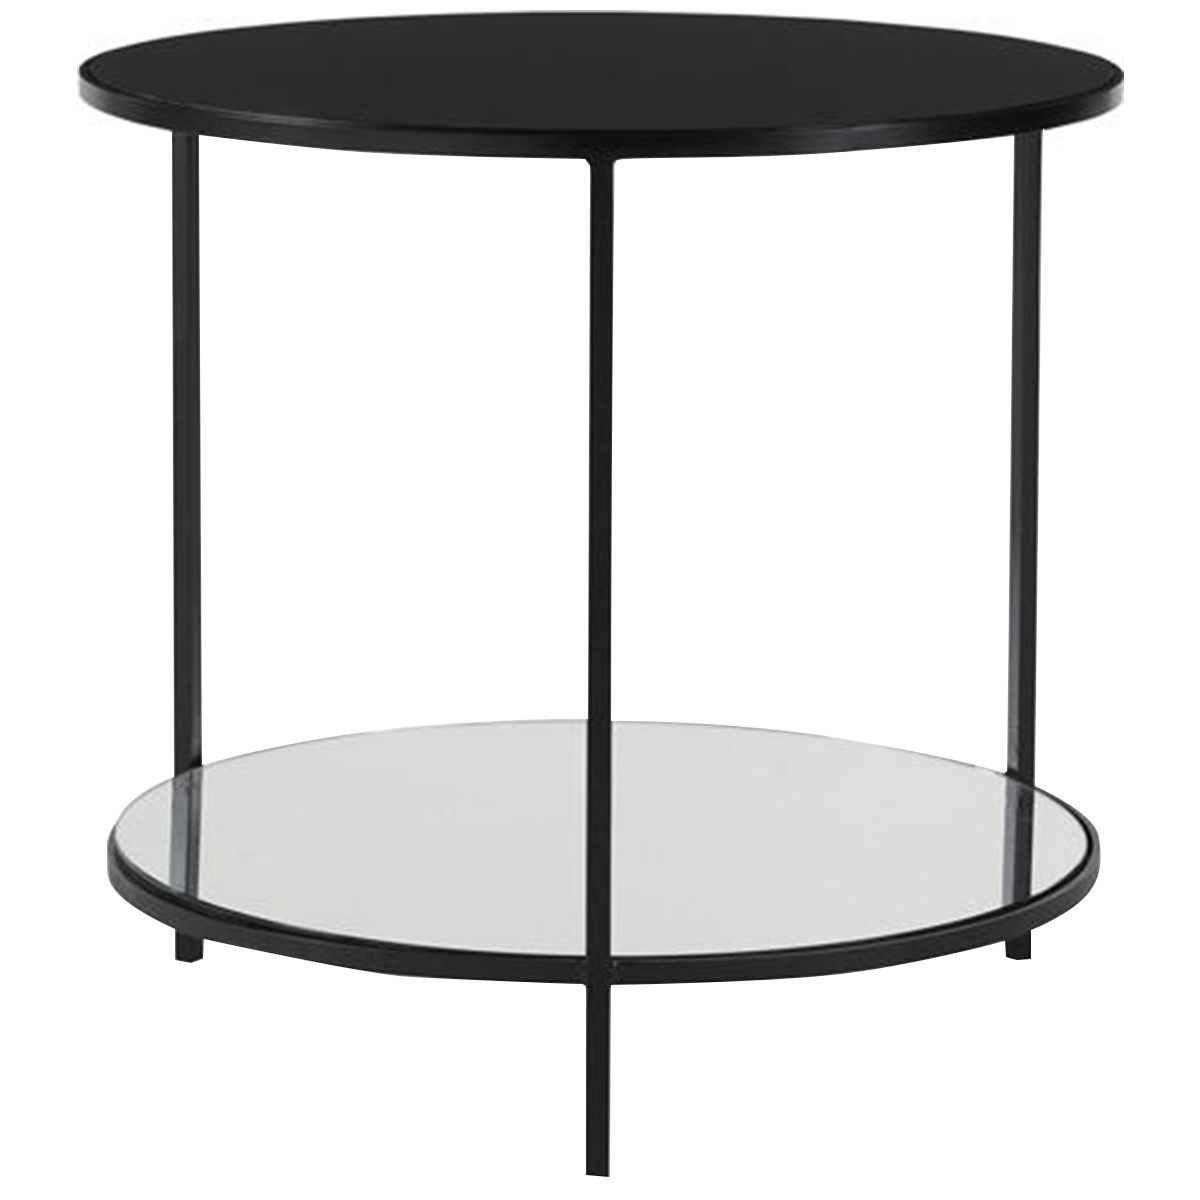 2019 Copper Grove Halesia Chocolate Bronze Round Coffee Tables With Regard To Black And Glass End Tables (Gallery 14 of 20)